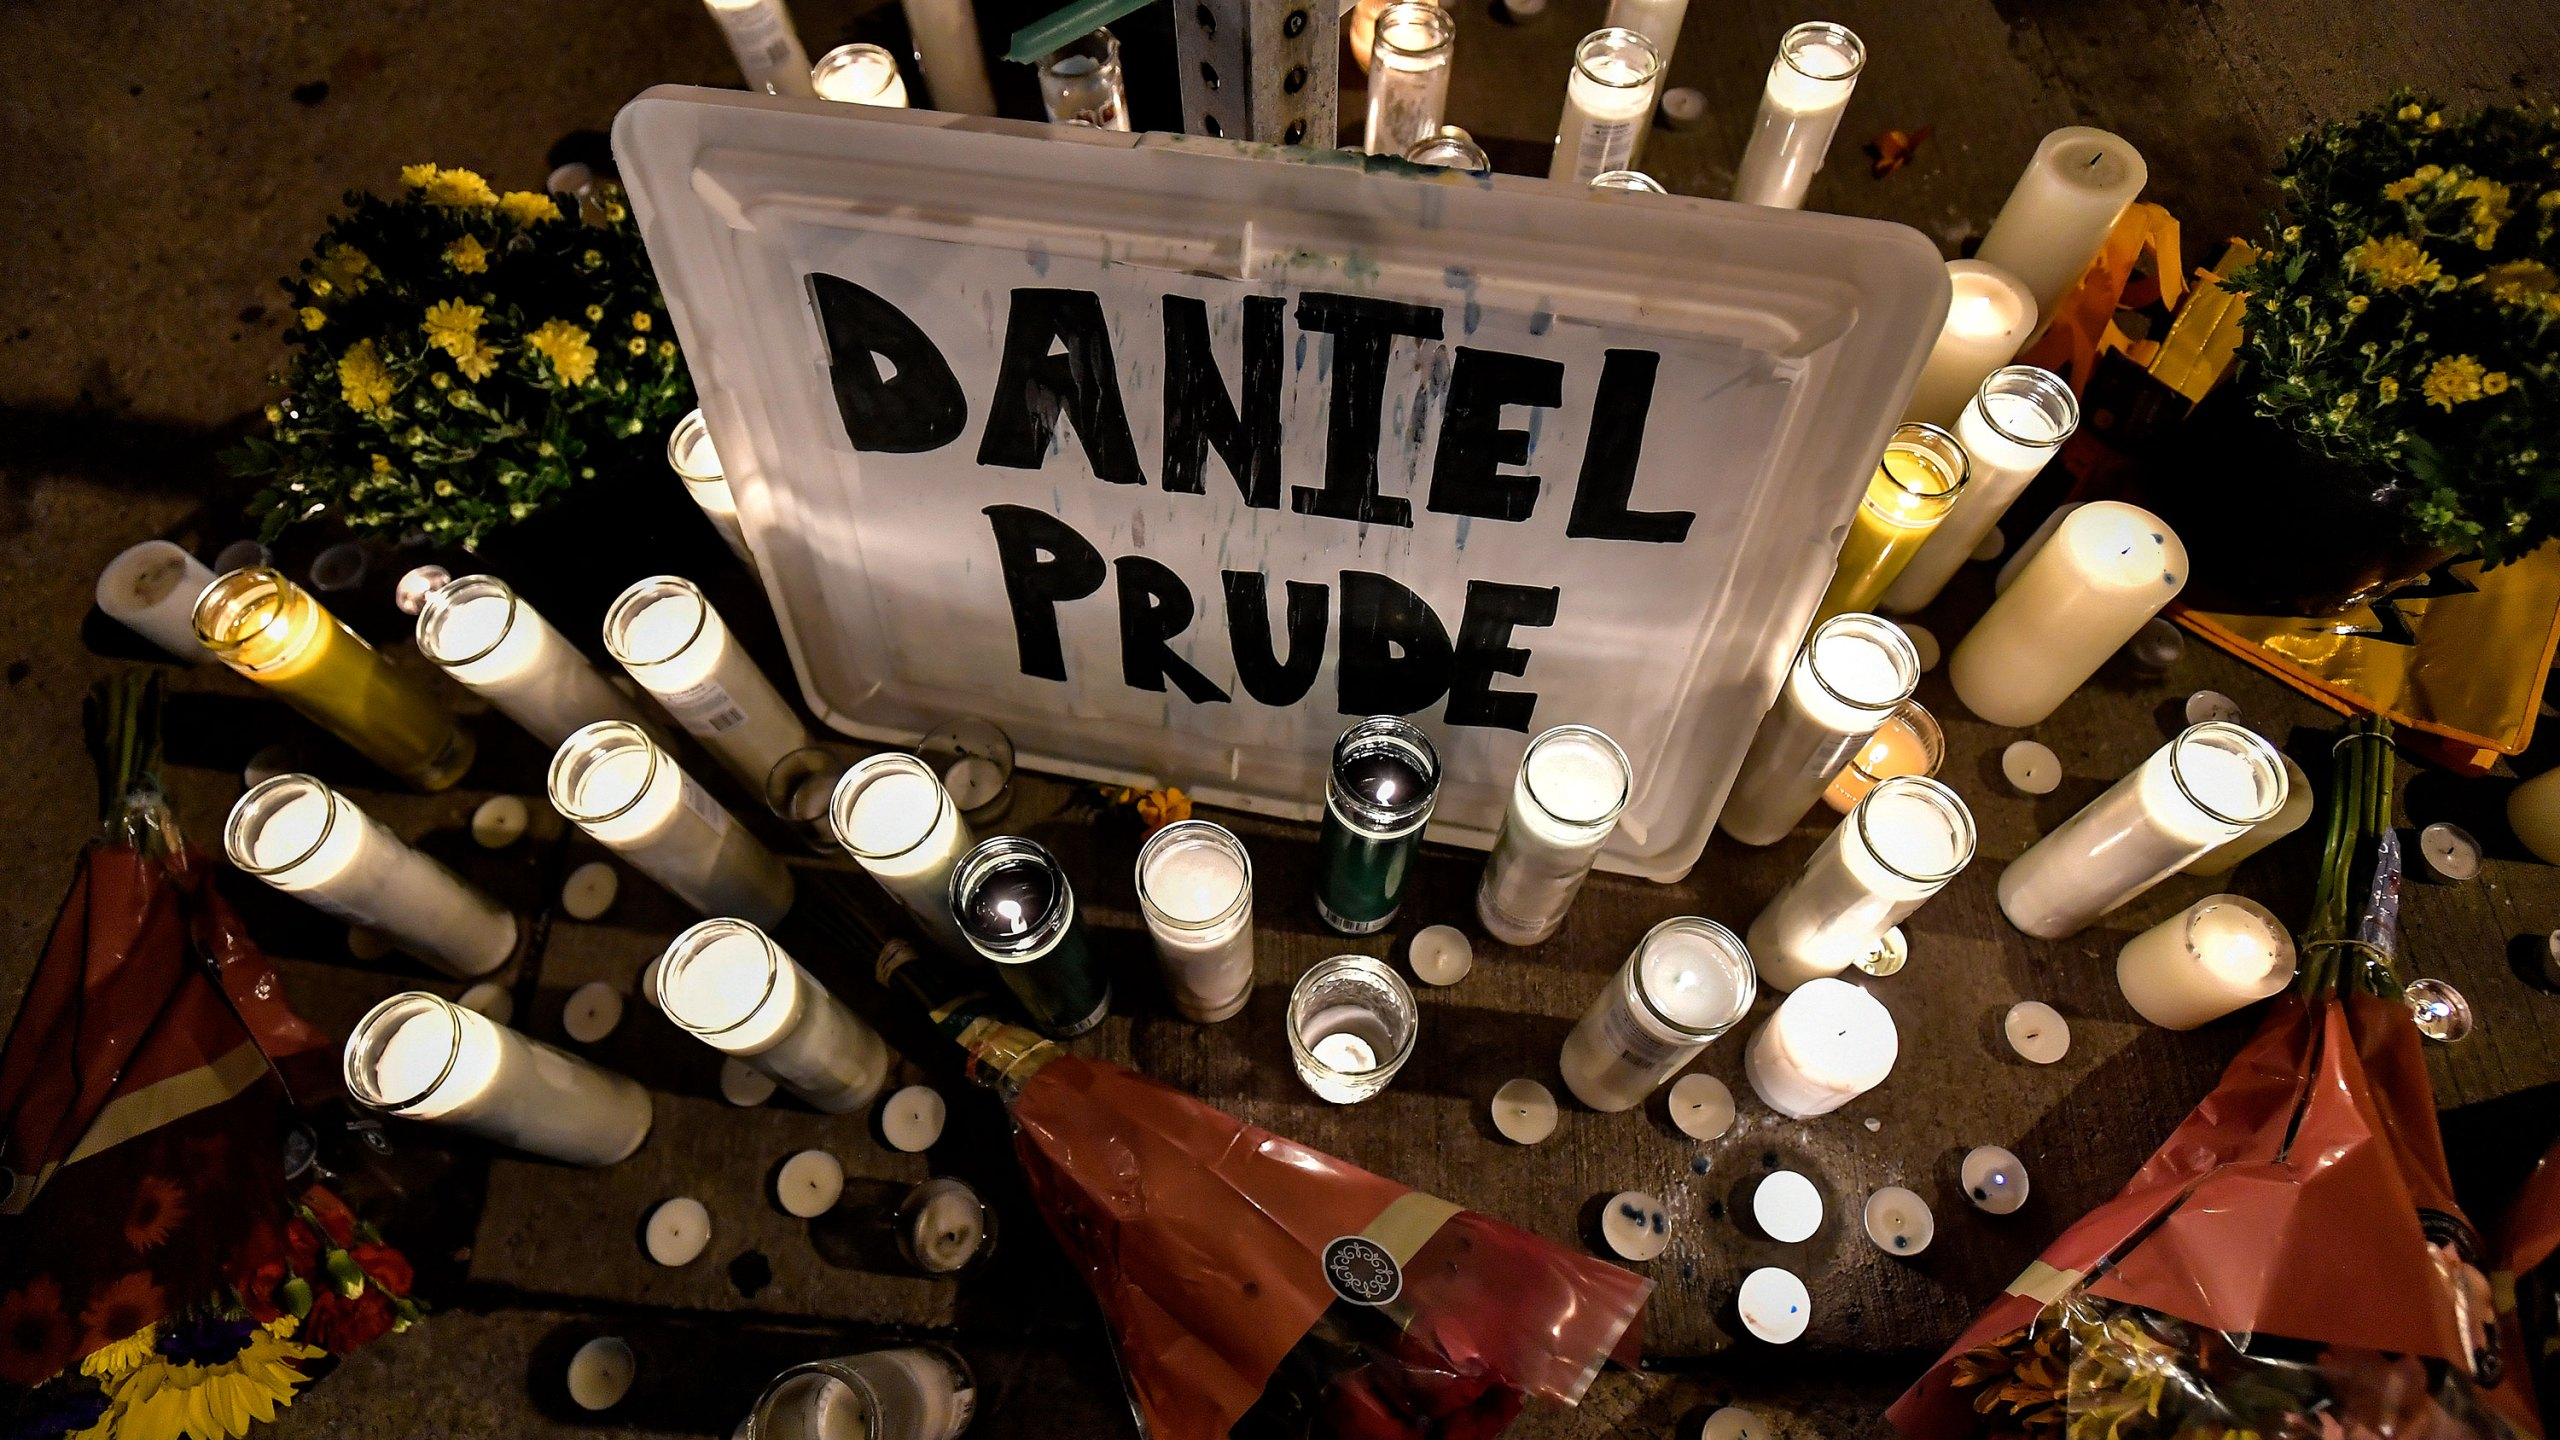 The Southern Tier Reacts To Death of Daniel Prude